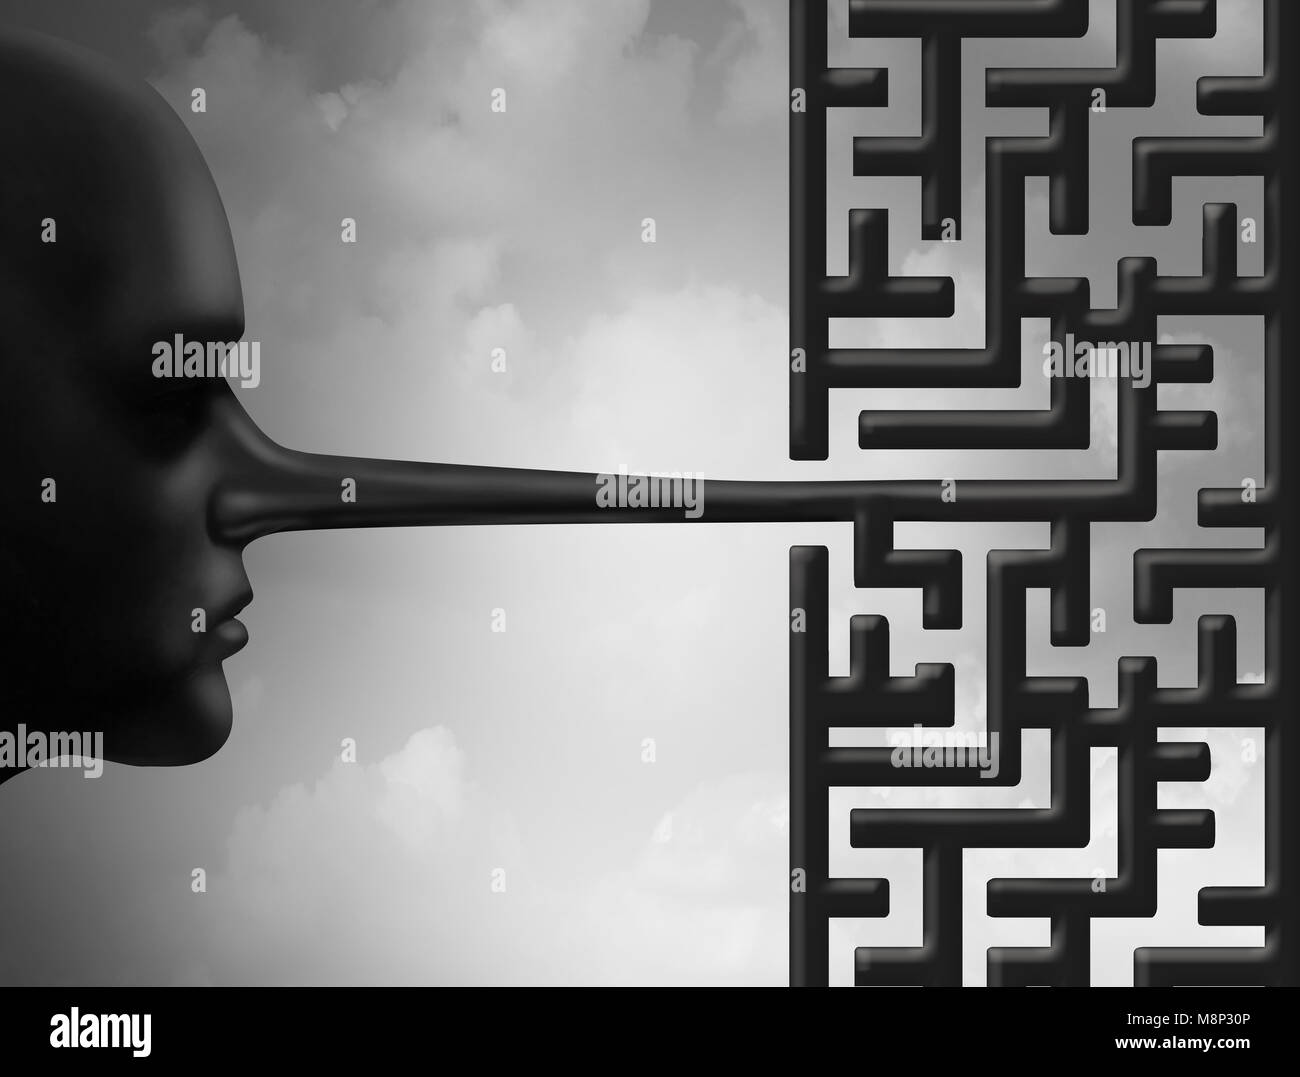 Investigate fraud and investigating corruption concept as a liar with a long nose shaped as a maze or labyrinth - Stock Image